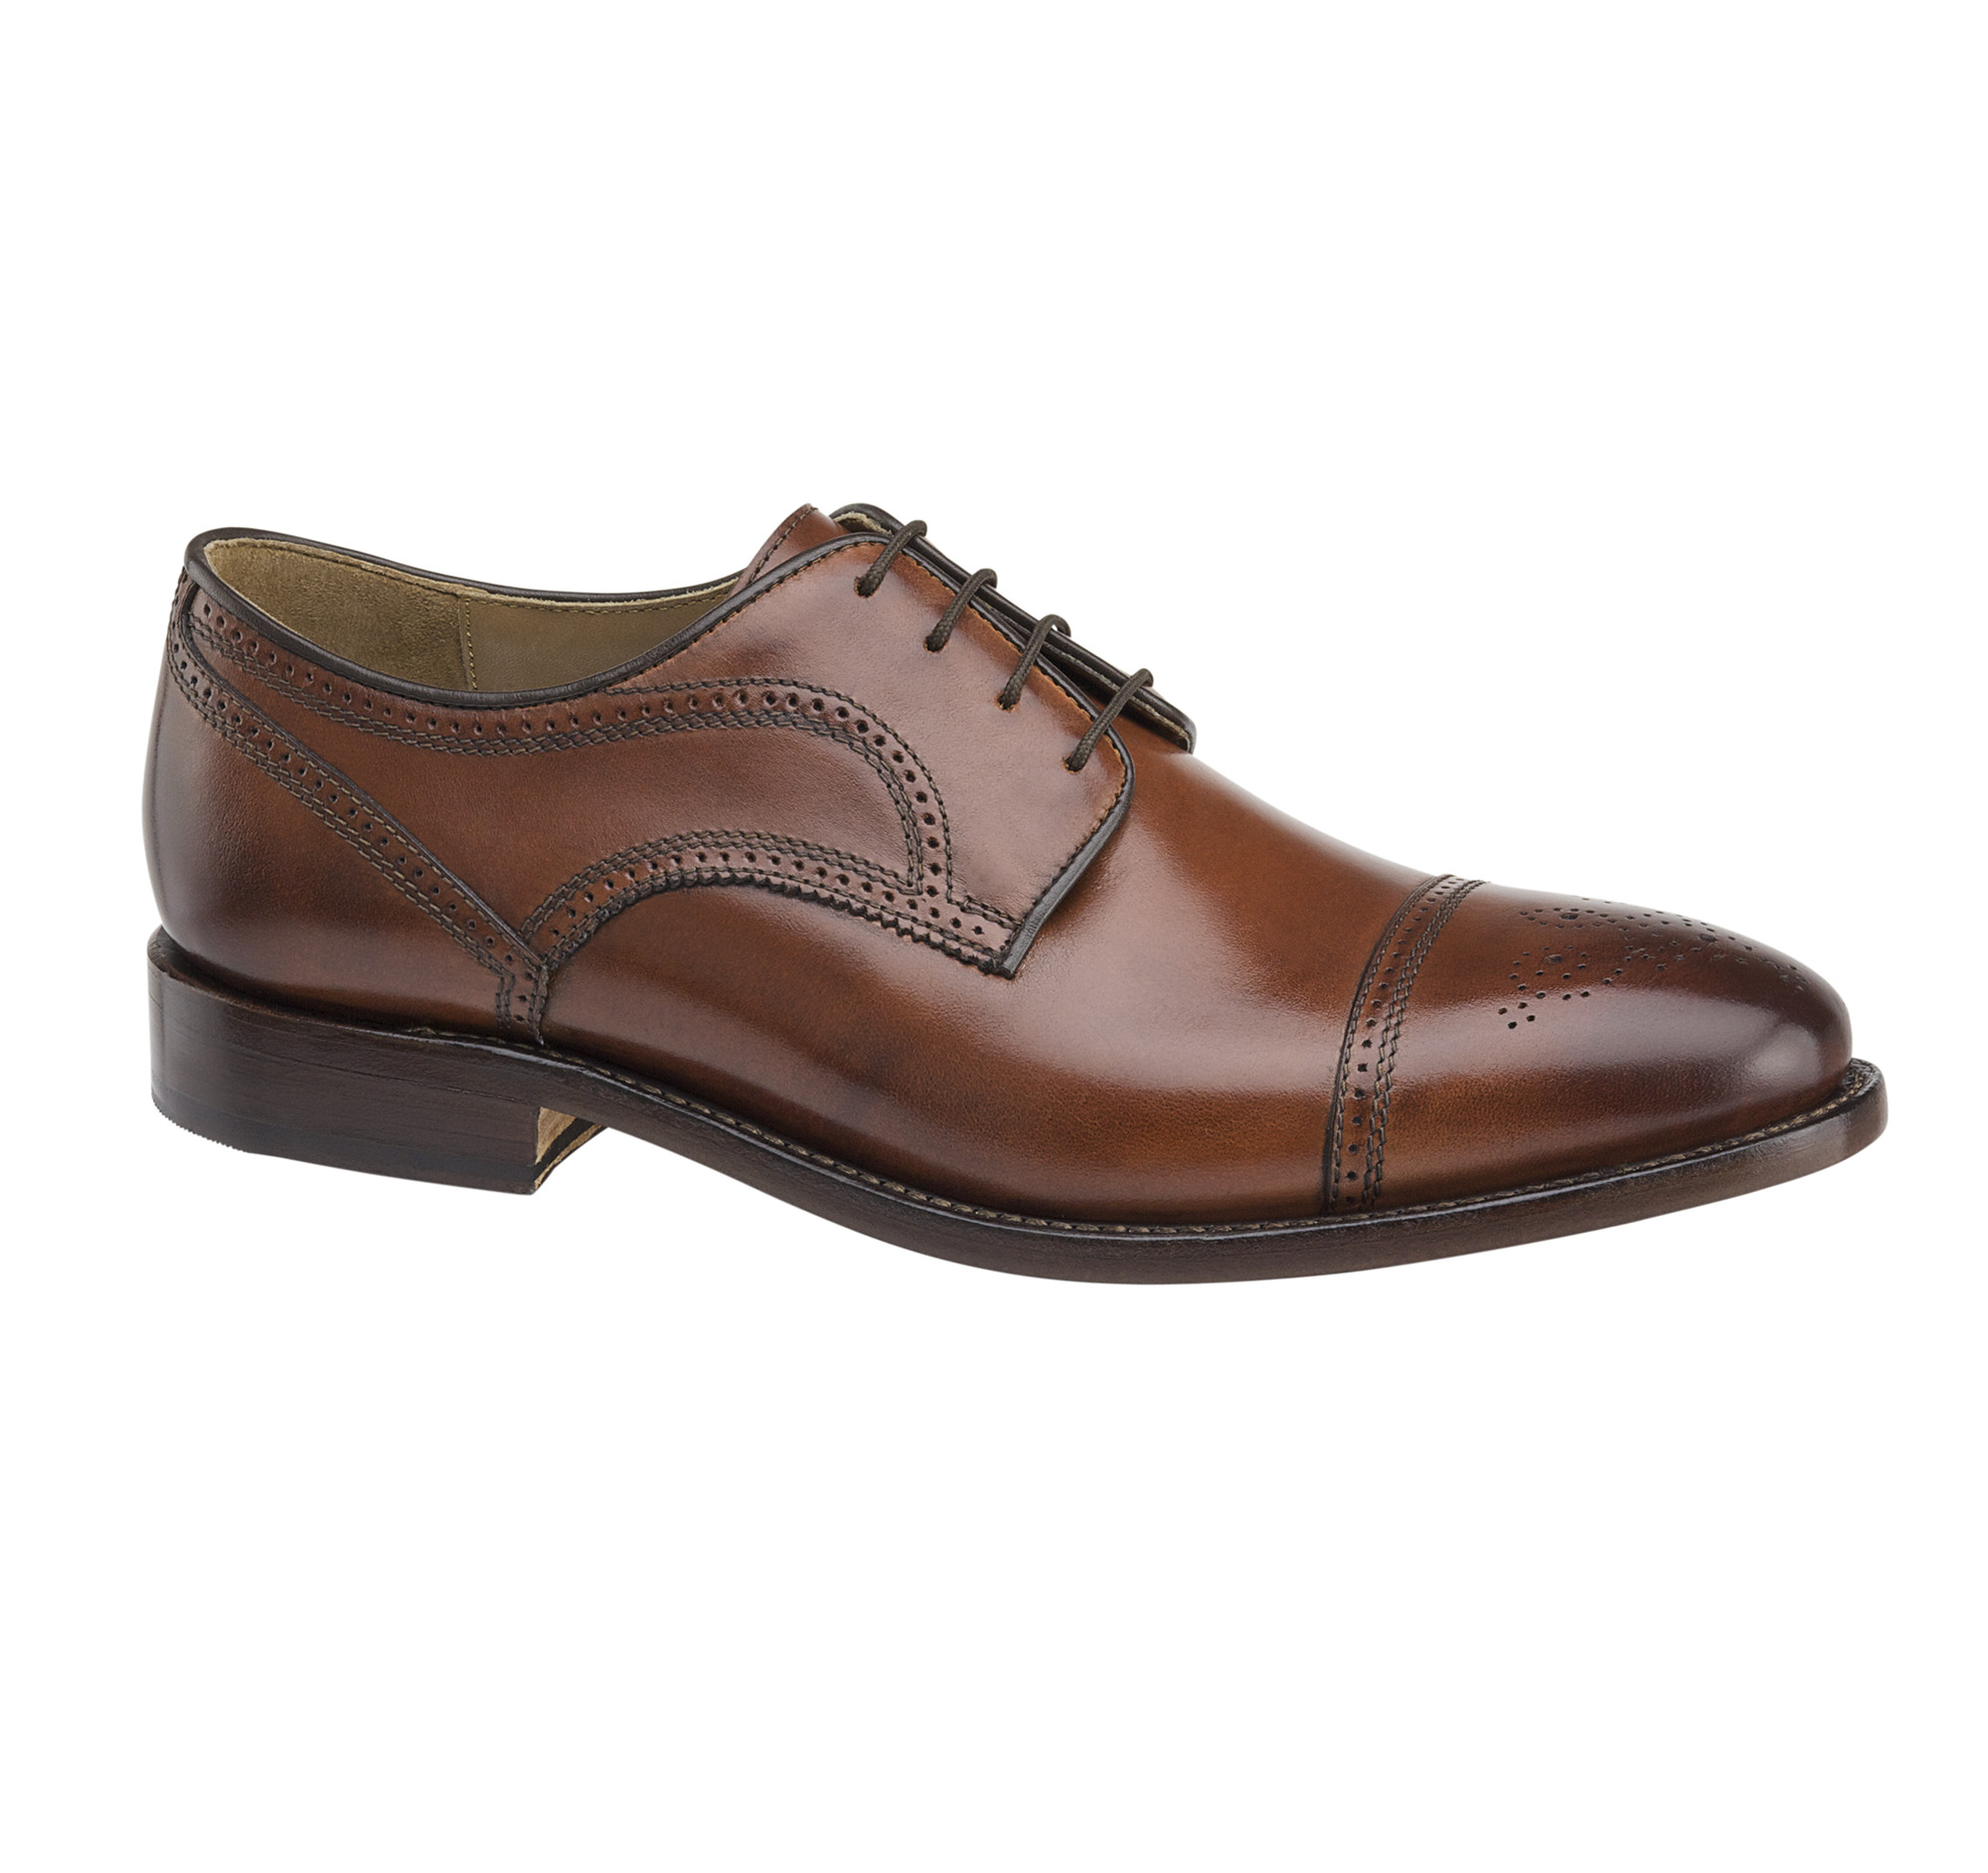 Johnston & Murphy Men's Collins Cap Toe Oxford hK89BL